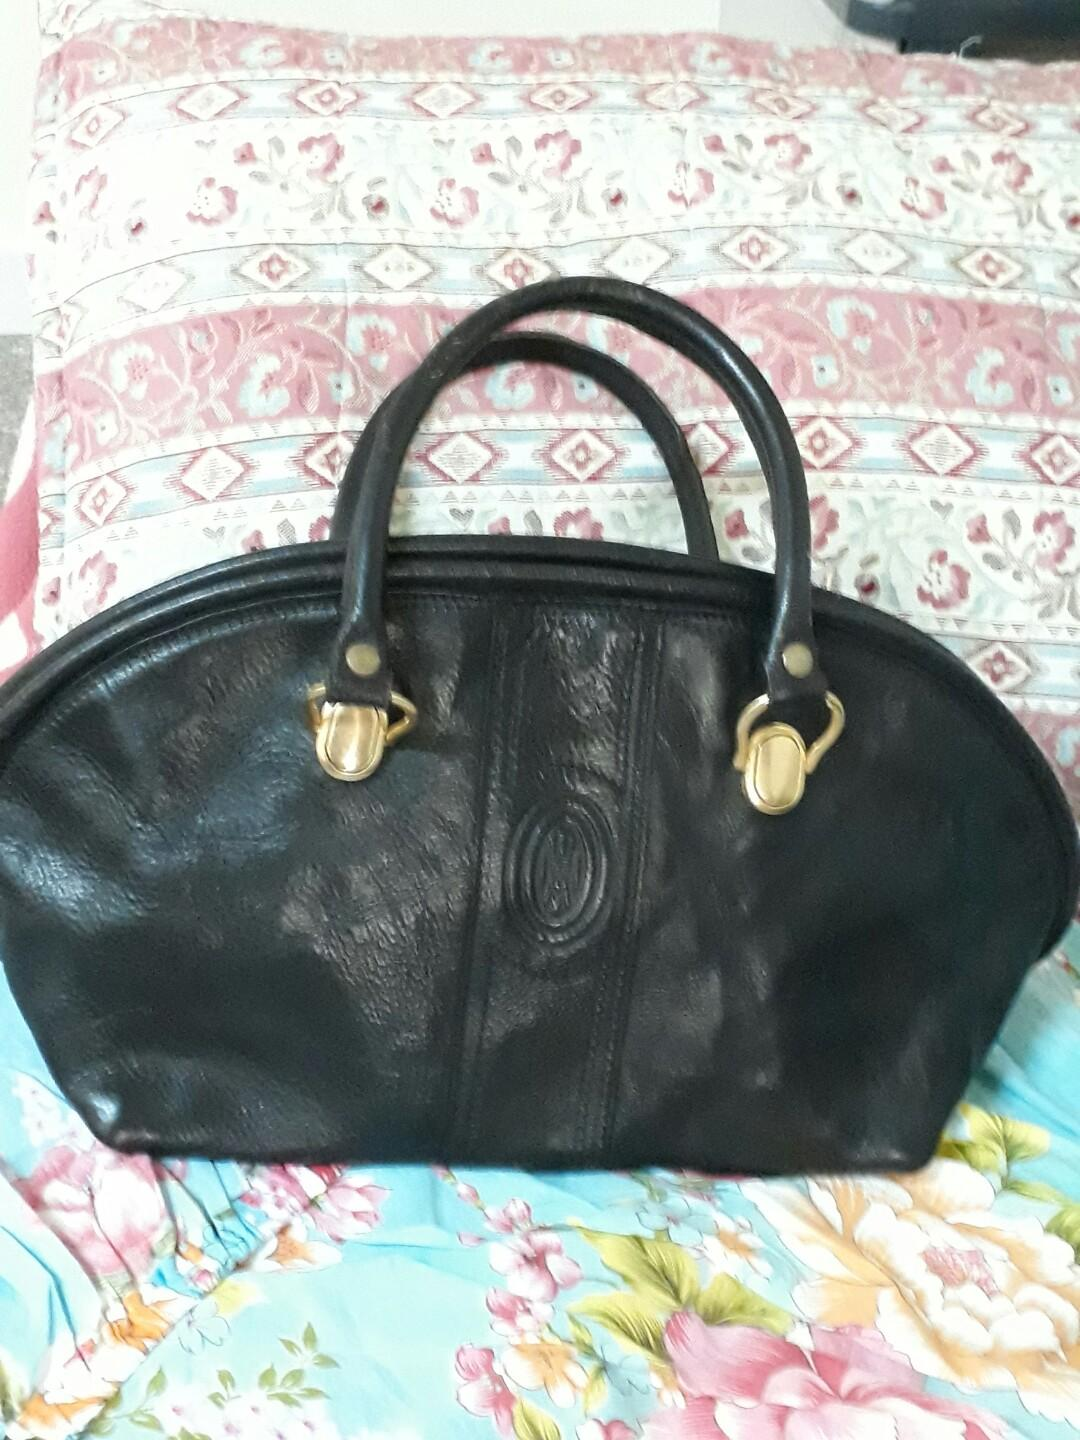 MADE IN ITALY真皮女包43×25  9成新